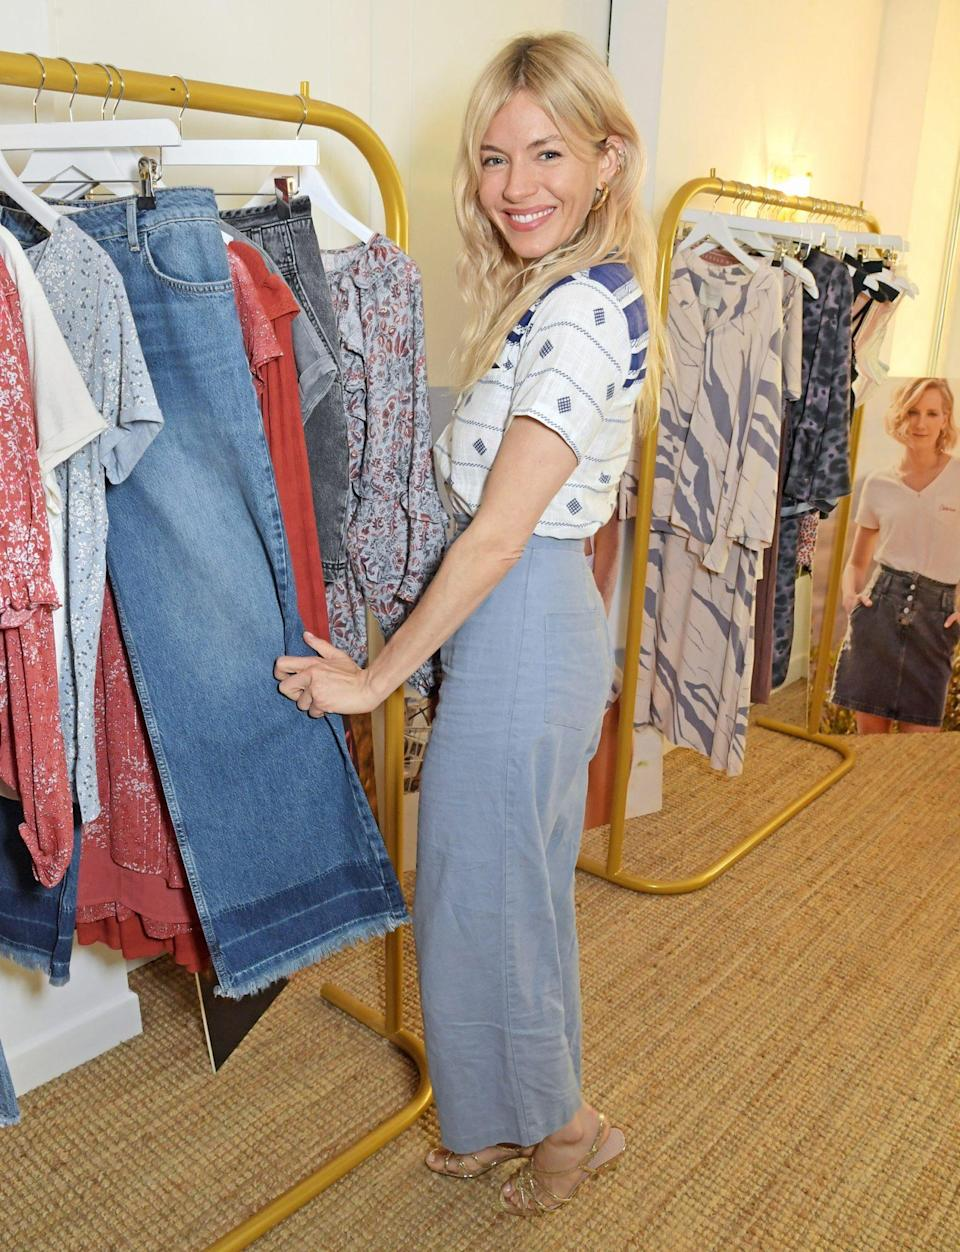 <p>Sienna Miller lends her star power to sister Savannah on June 10 at the launch of the Savannah Miller x Next collection at SohoWorks in London.</p>